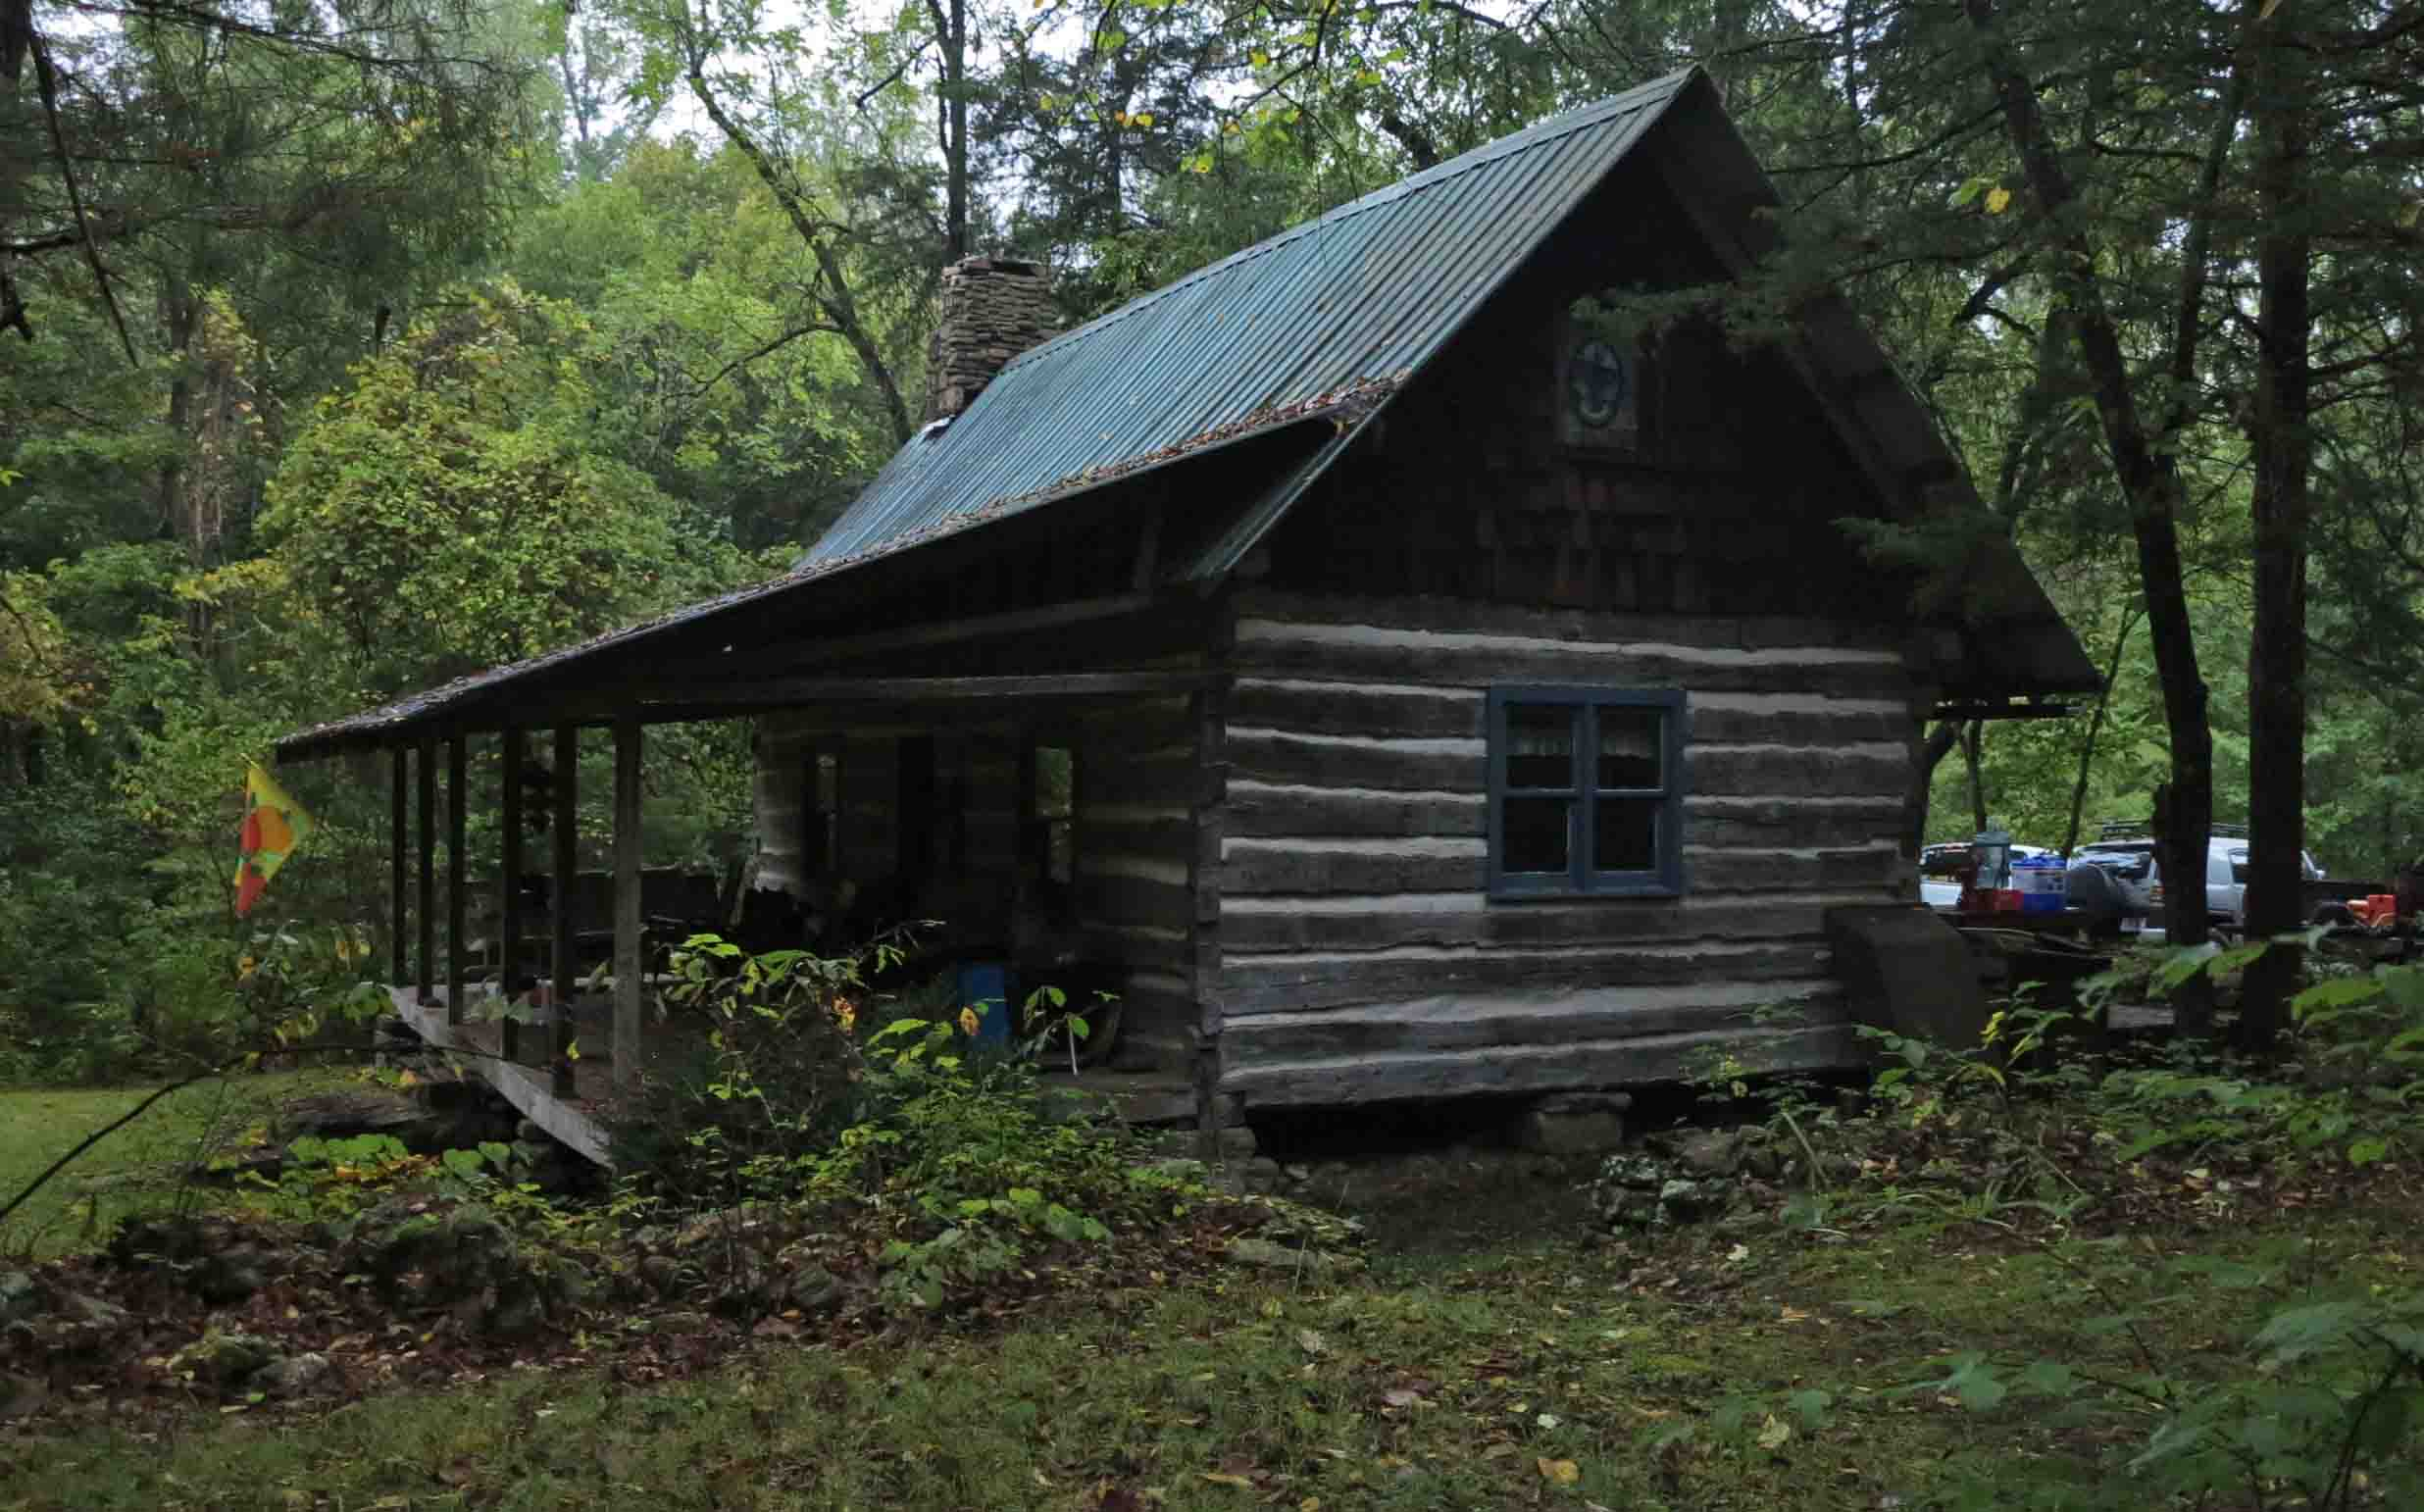 b arkansas church ozark photo sits country running the of cabins in foothill on mountains with grassy road gravel